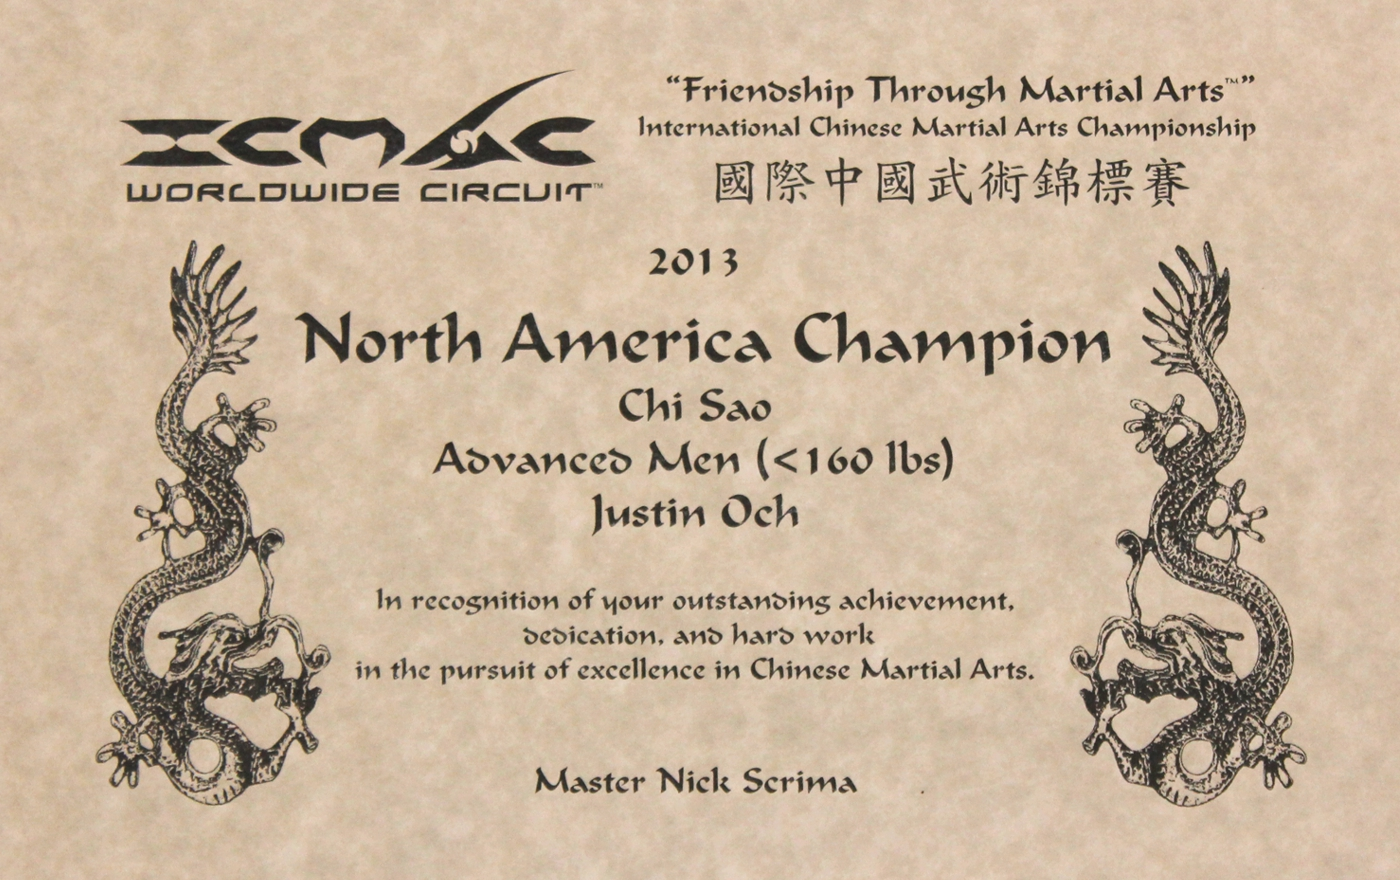 ICMAC, North American Champion, Wing Chun Champion, Wing Chun North American Champion, Chi Sau, Weapons, Forms, Advanced Wing Chun